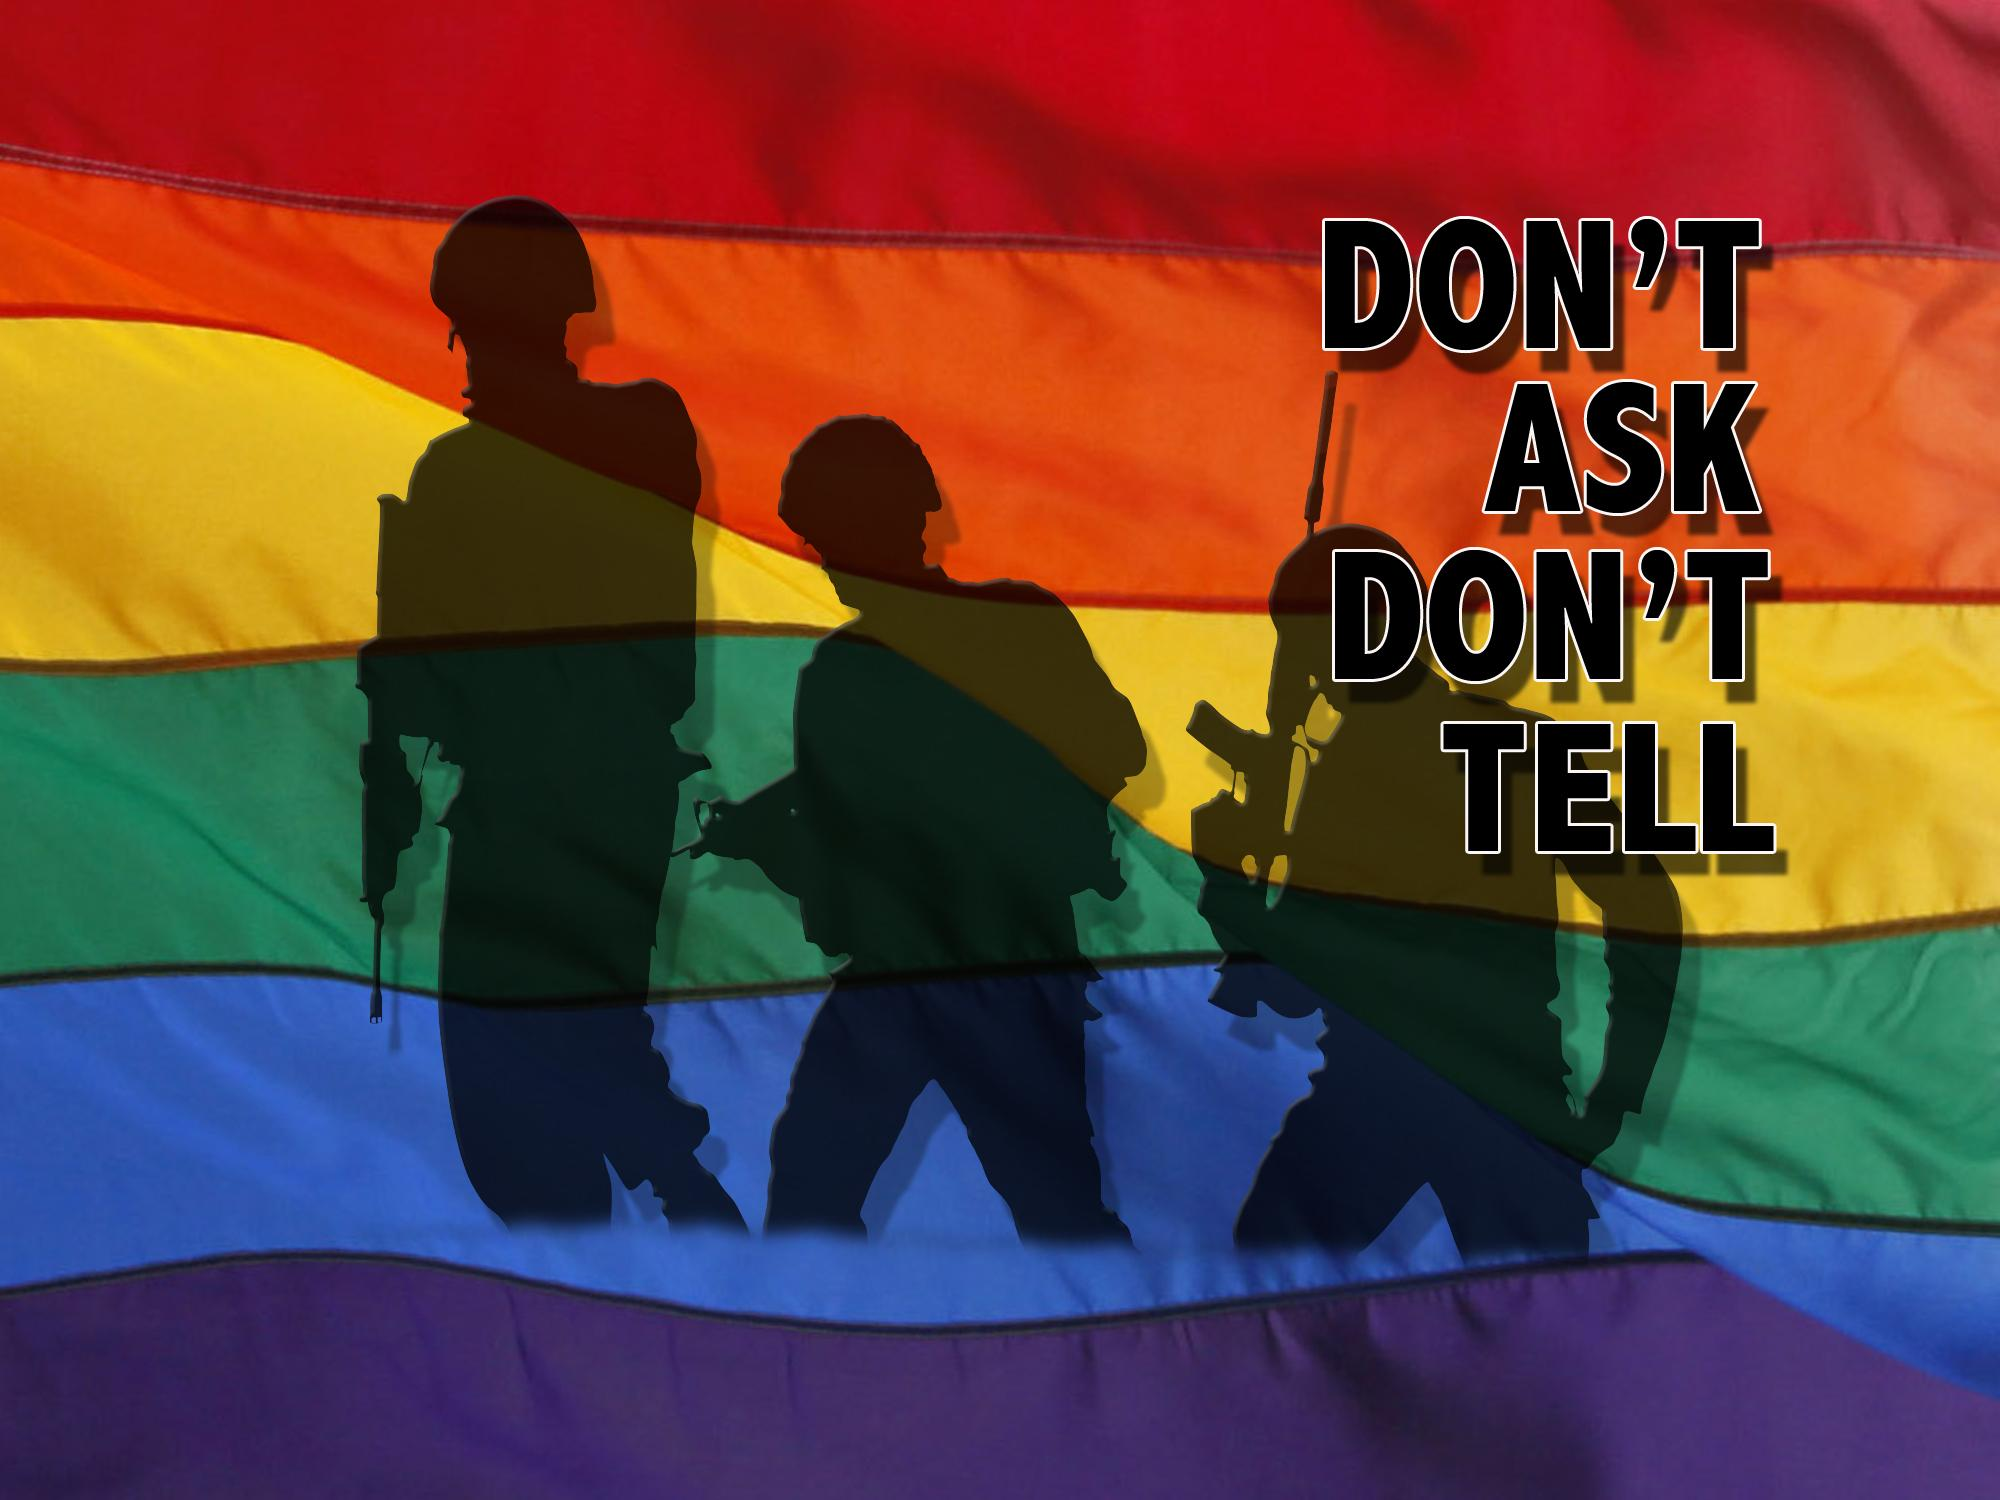 dont ask dont tell policy In 2010, congress passed a law to repeal don't ask, don't tell (dadt), a policy that had been in place since it was signed into law by president clinton in 1993 under dadt, service members could not be asked whether they were homosexual or bisexual, but they were also prohibited from discussing that topic.